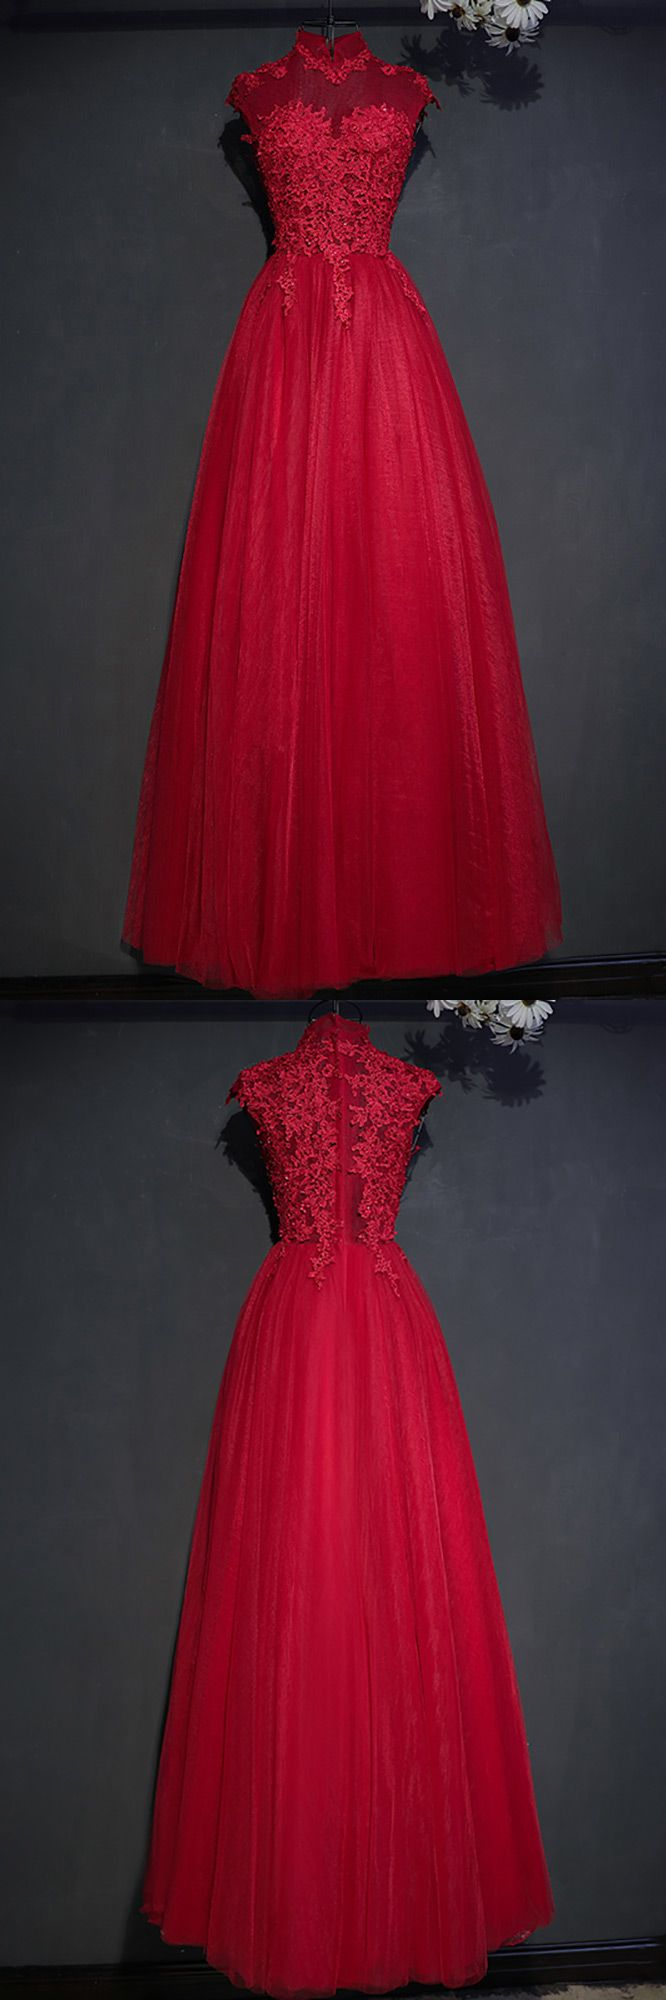 Vintage lace high neck long tulle prom party dress burgundy